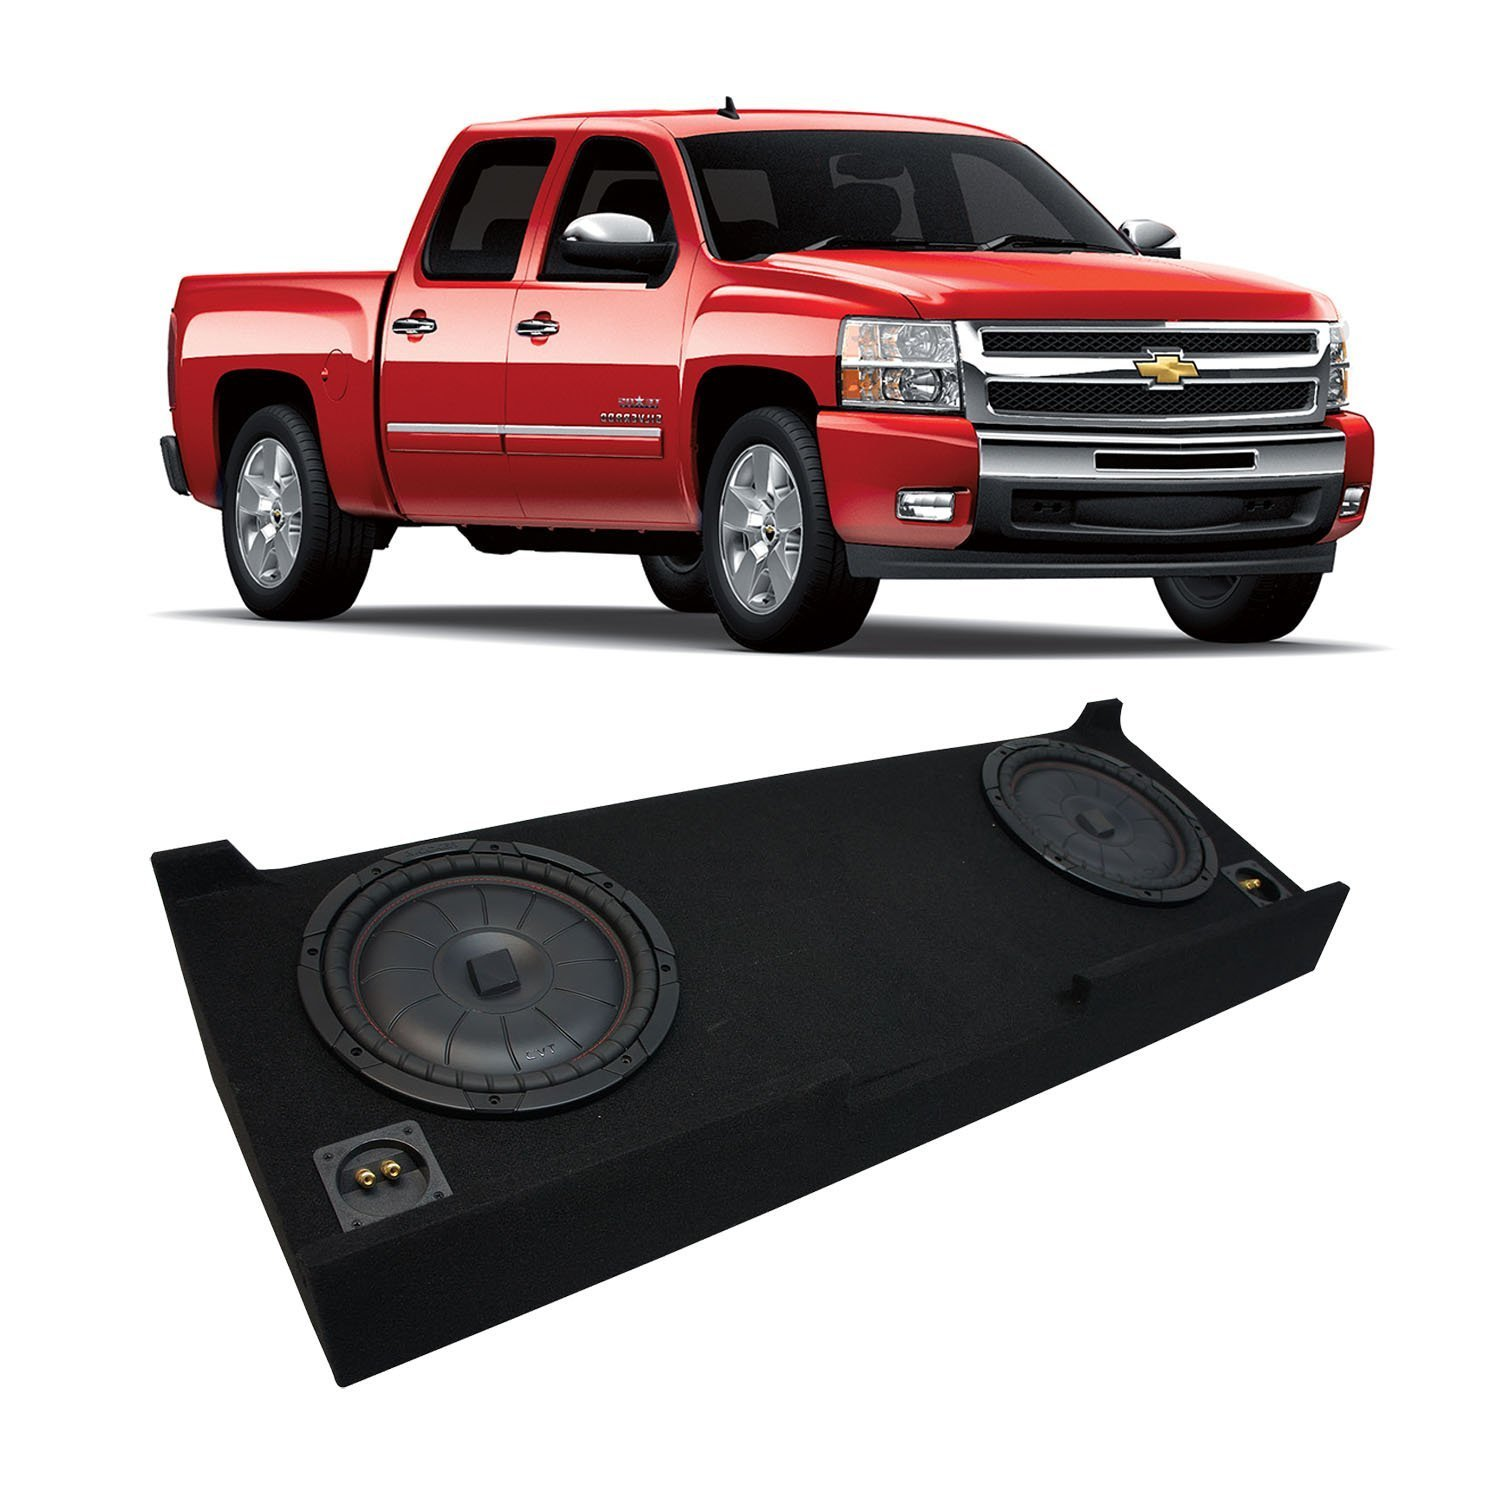 "Fits 2007-2013 Chevy Silverado Crew Cab Truck Kicker CompVT CVT12 Dual 12"" Sub Box Enclosure - Final 2 Ohm"